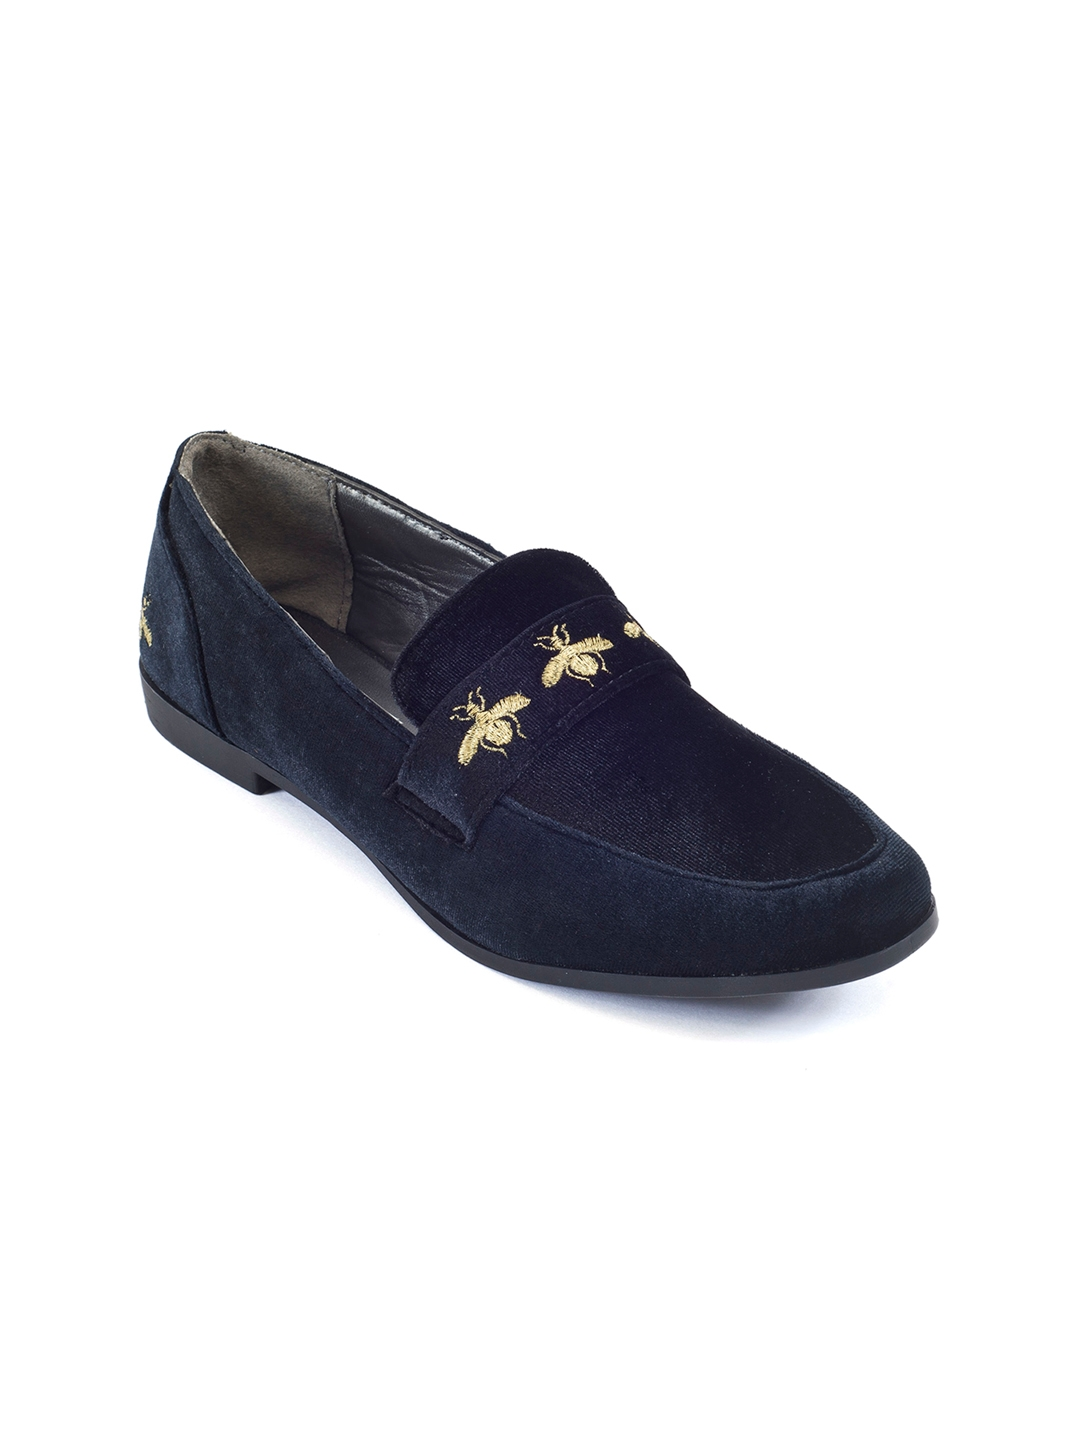 60ccd0cf5ef Buy Truffle Collection Women Black   Navy Blue Loafers - Casual ...